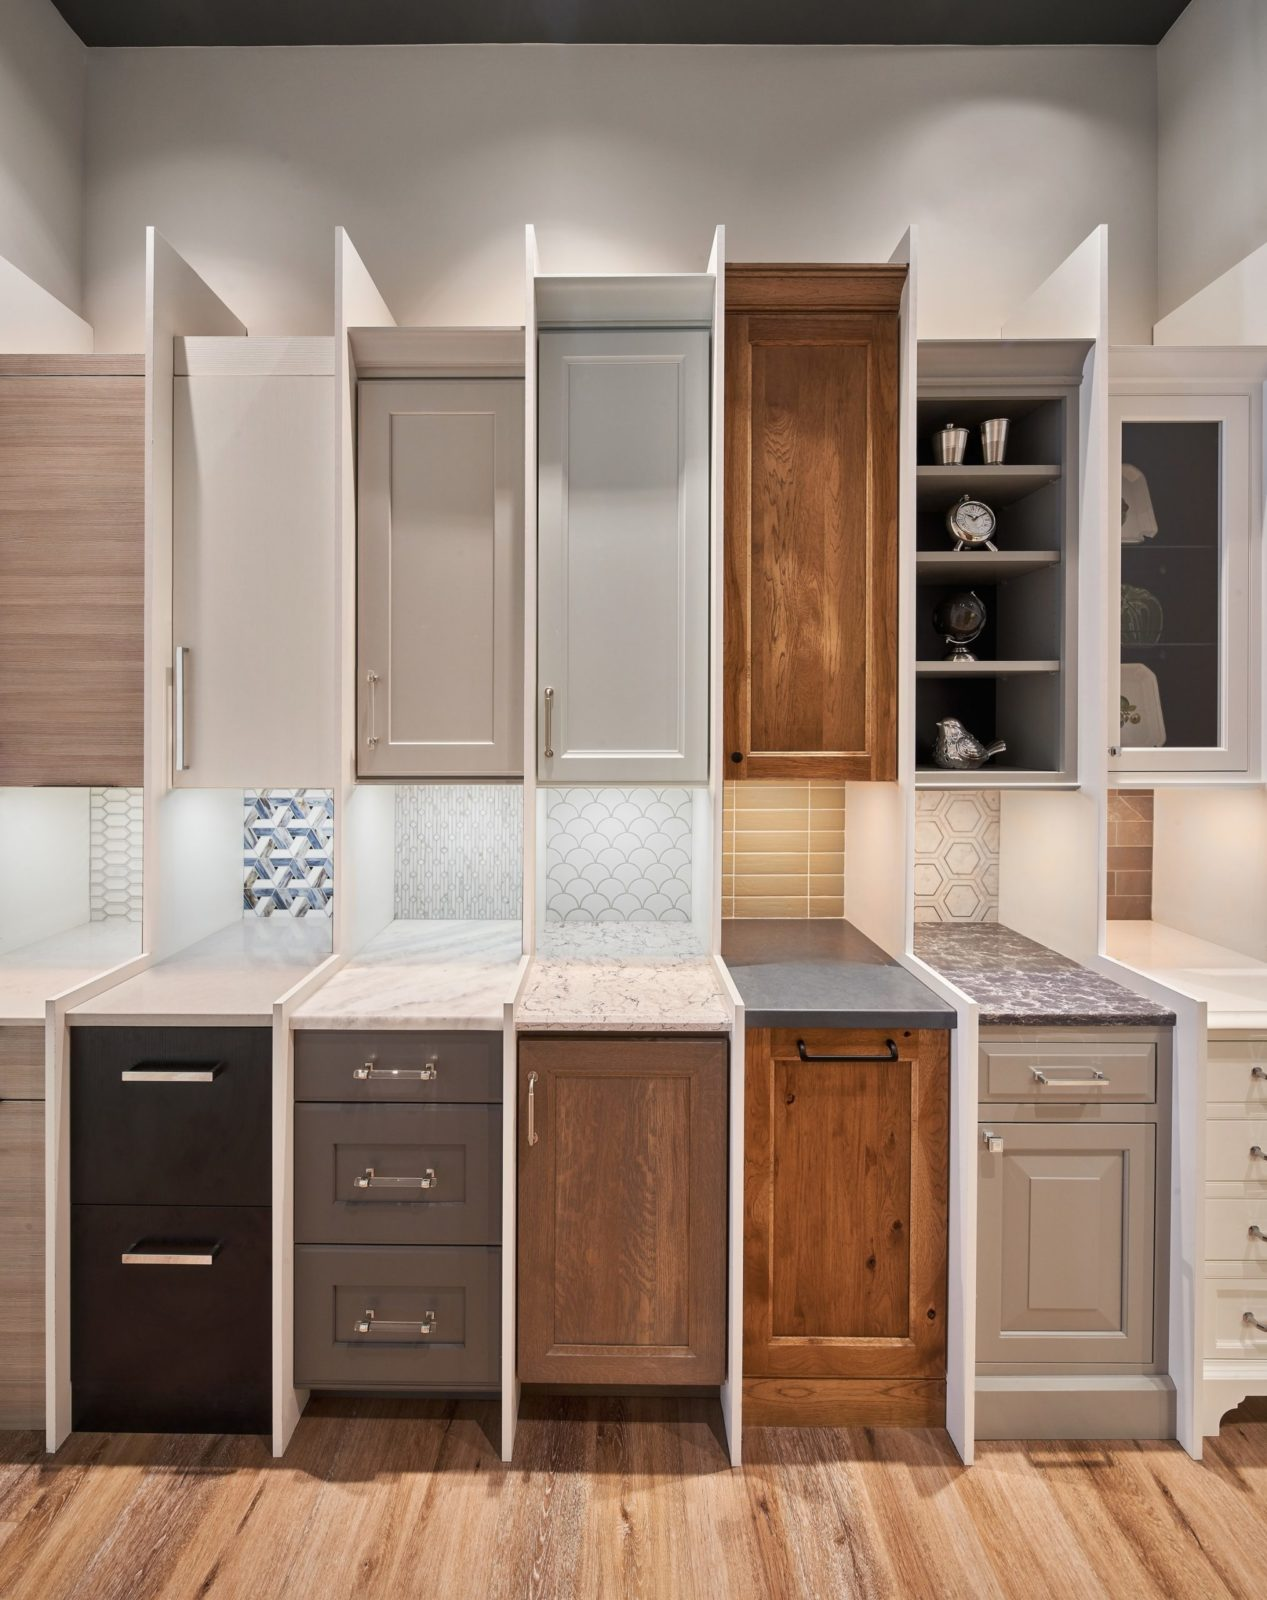 Miniature kitchen cabinet display with various door styles and finishes.